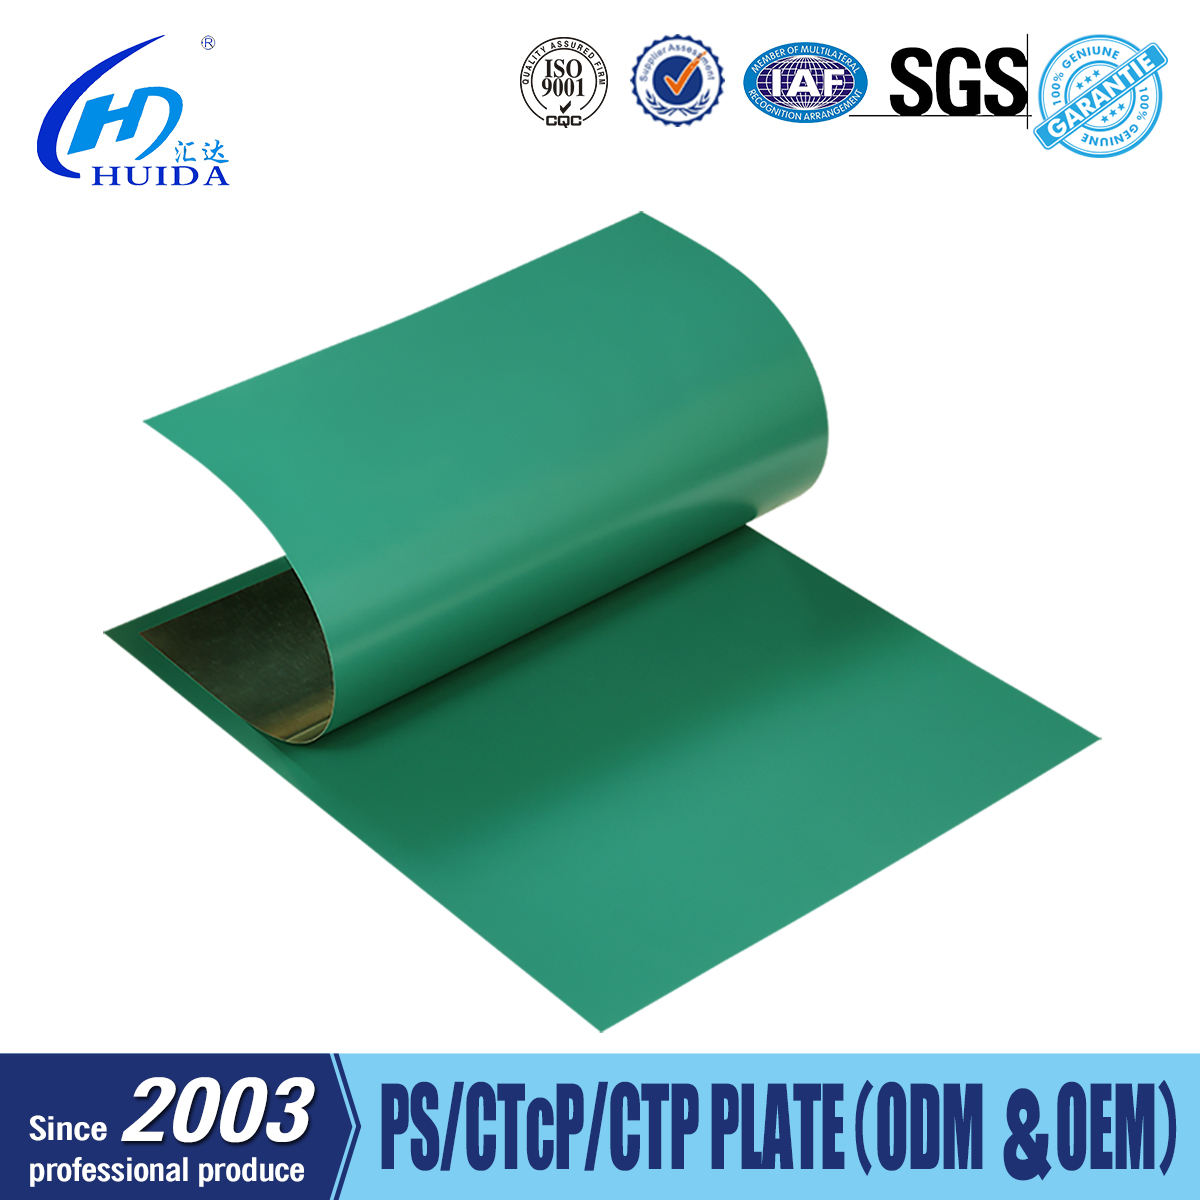 lithographic printing ps plate